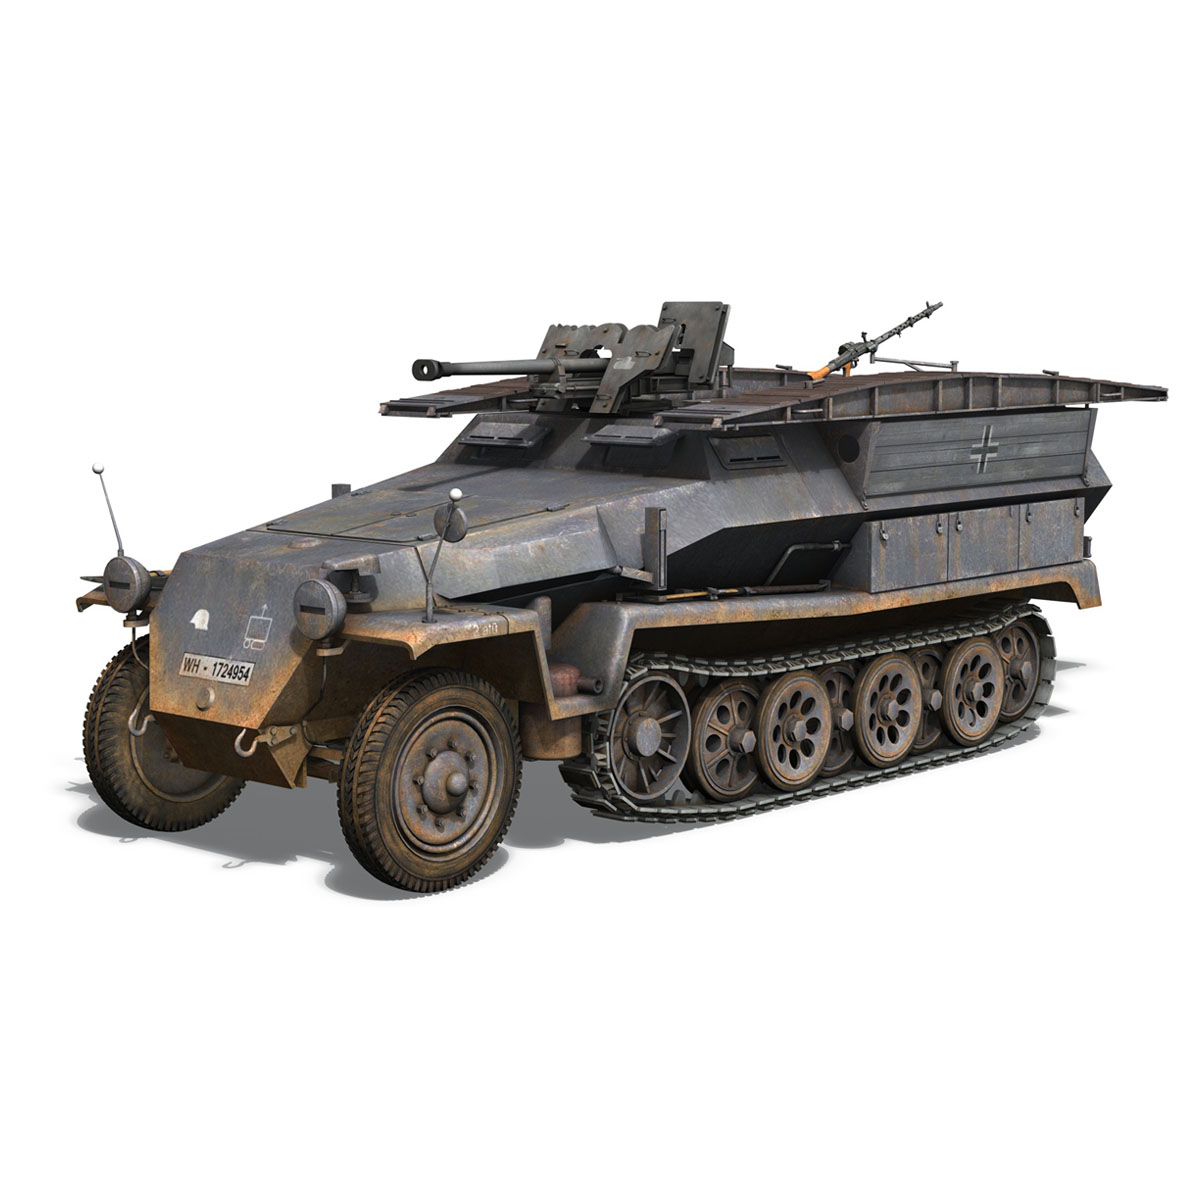 sd.kfz 251/7 ausf.c – pioneer assault bridge 3d model 3ds fbx c4d lwo obj 201520